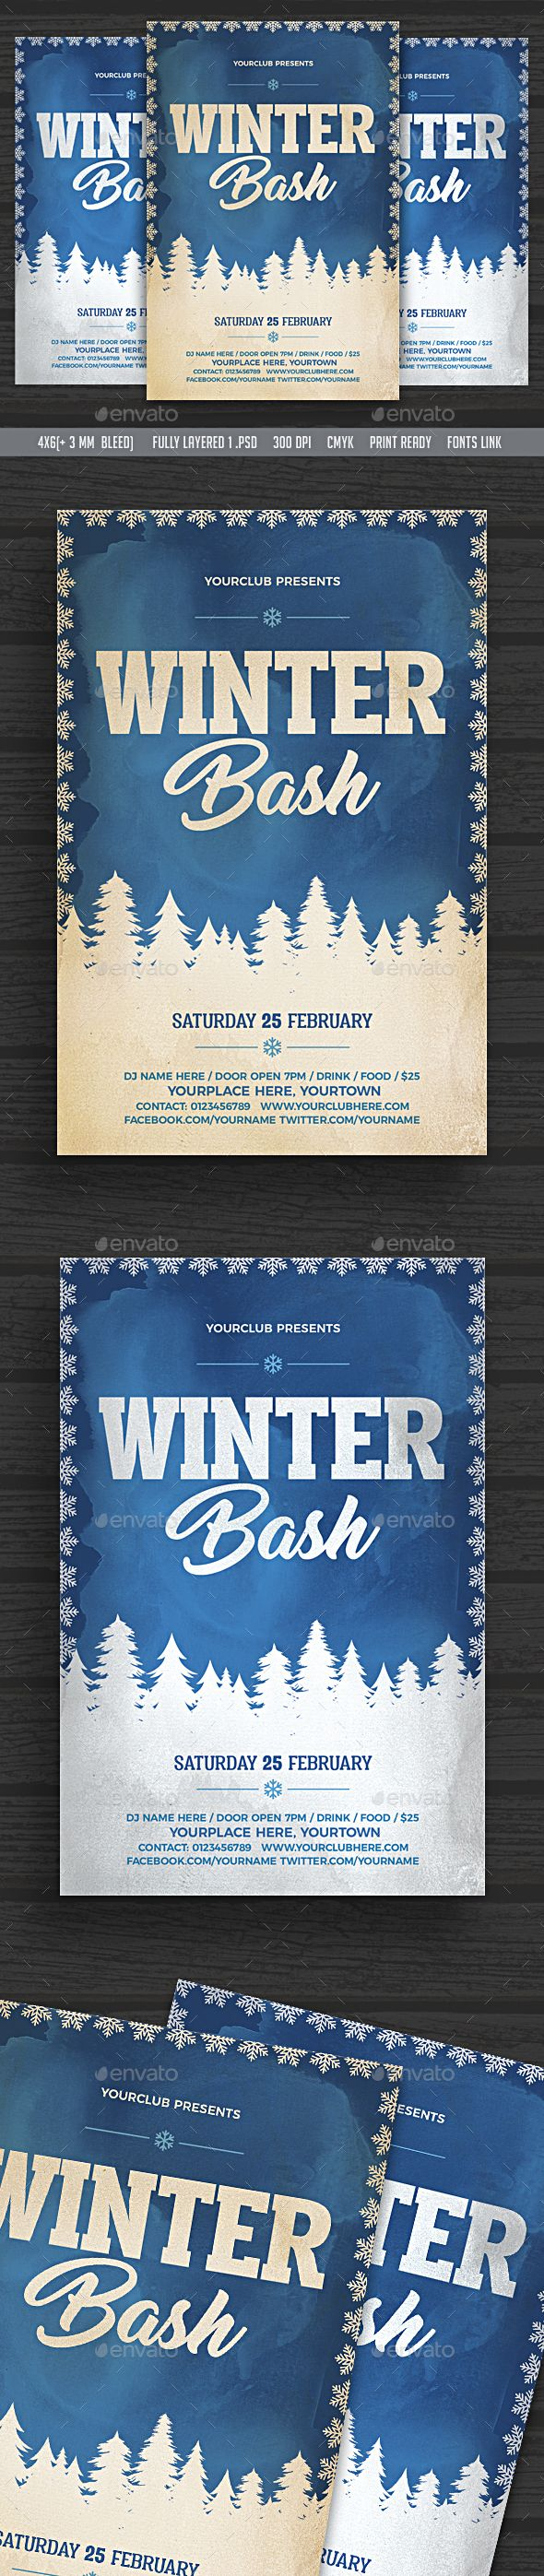 Vintage Winter Bash Flyer  Vintage Winter Flyer Template And Winter